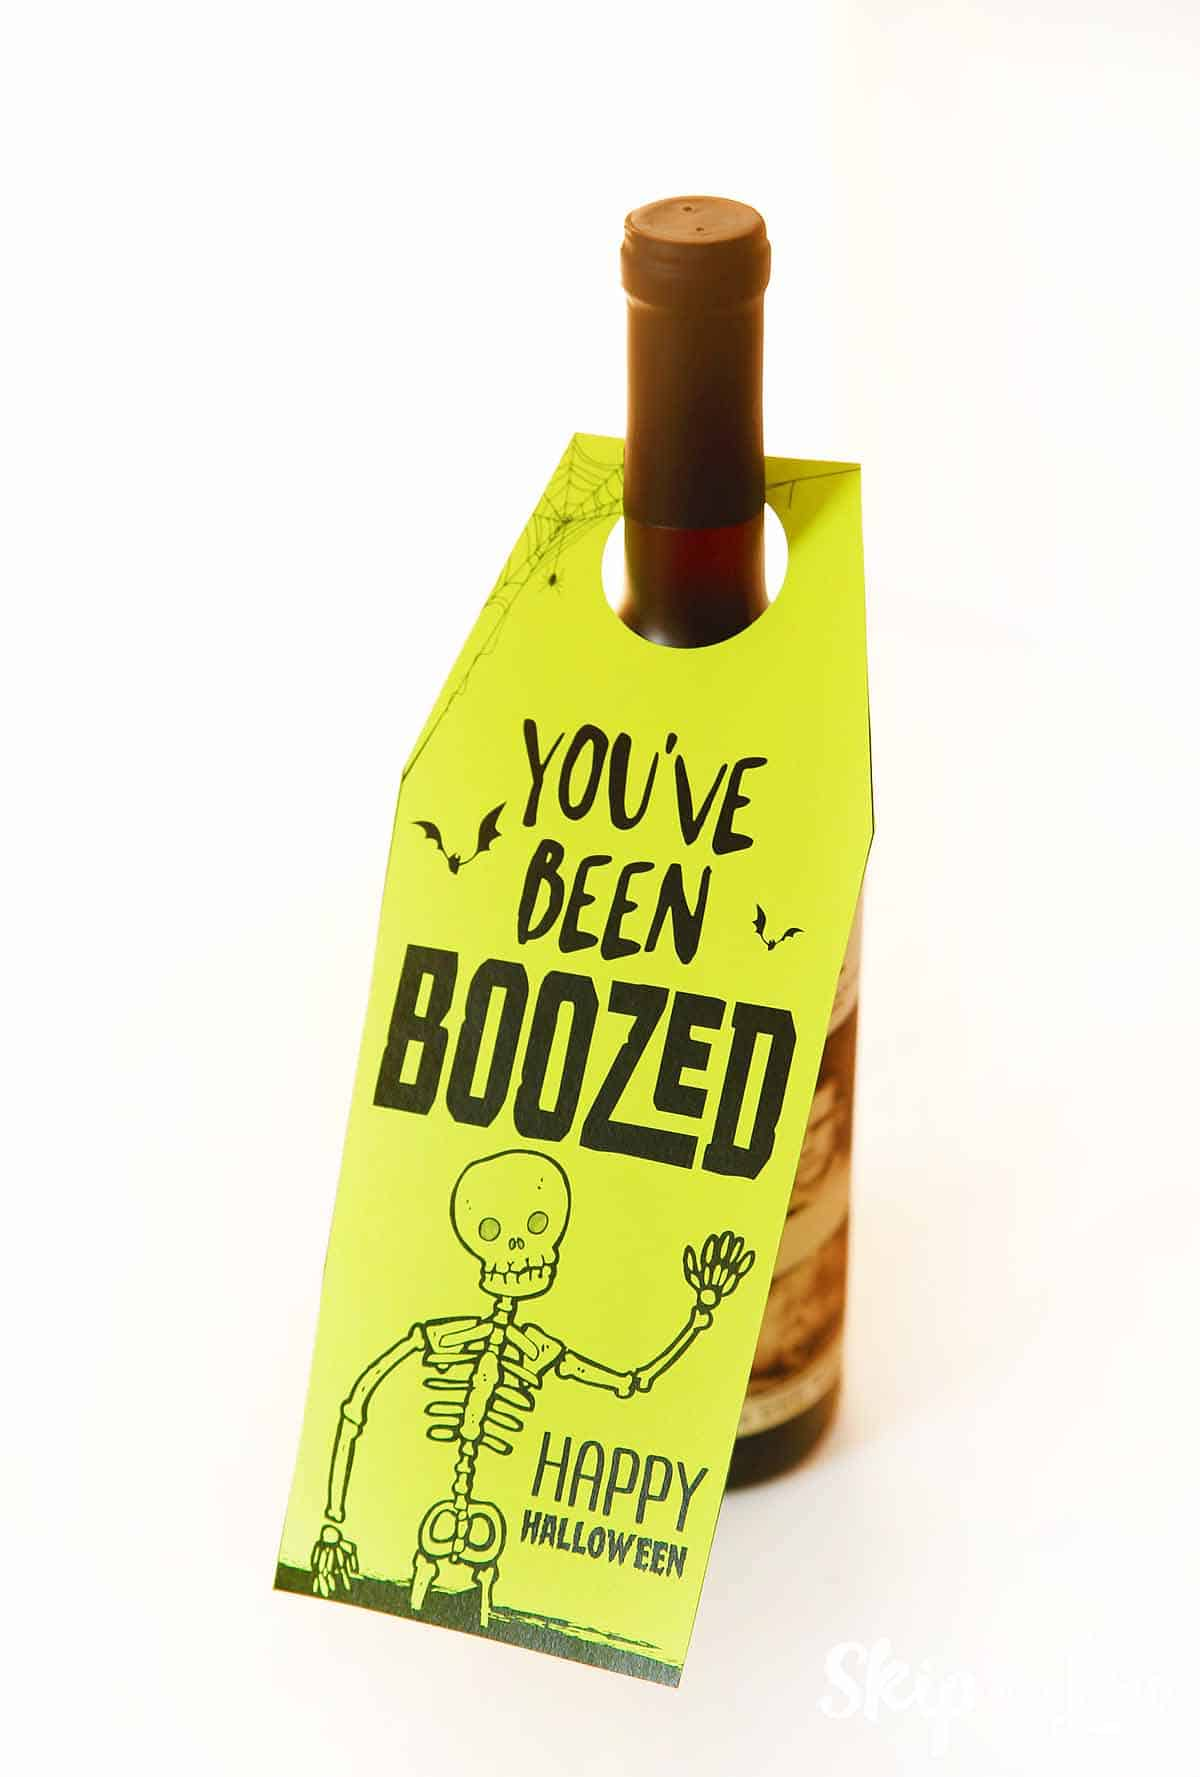 photo relating to You've Been Boozed Printable identified as Youve Been BOOzed Pass up Toward My Lou